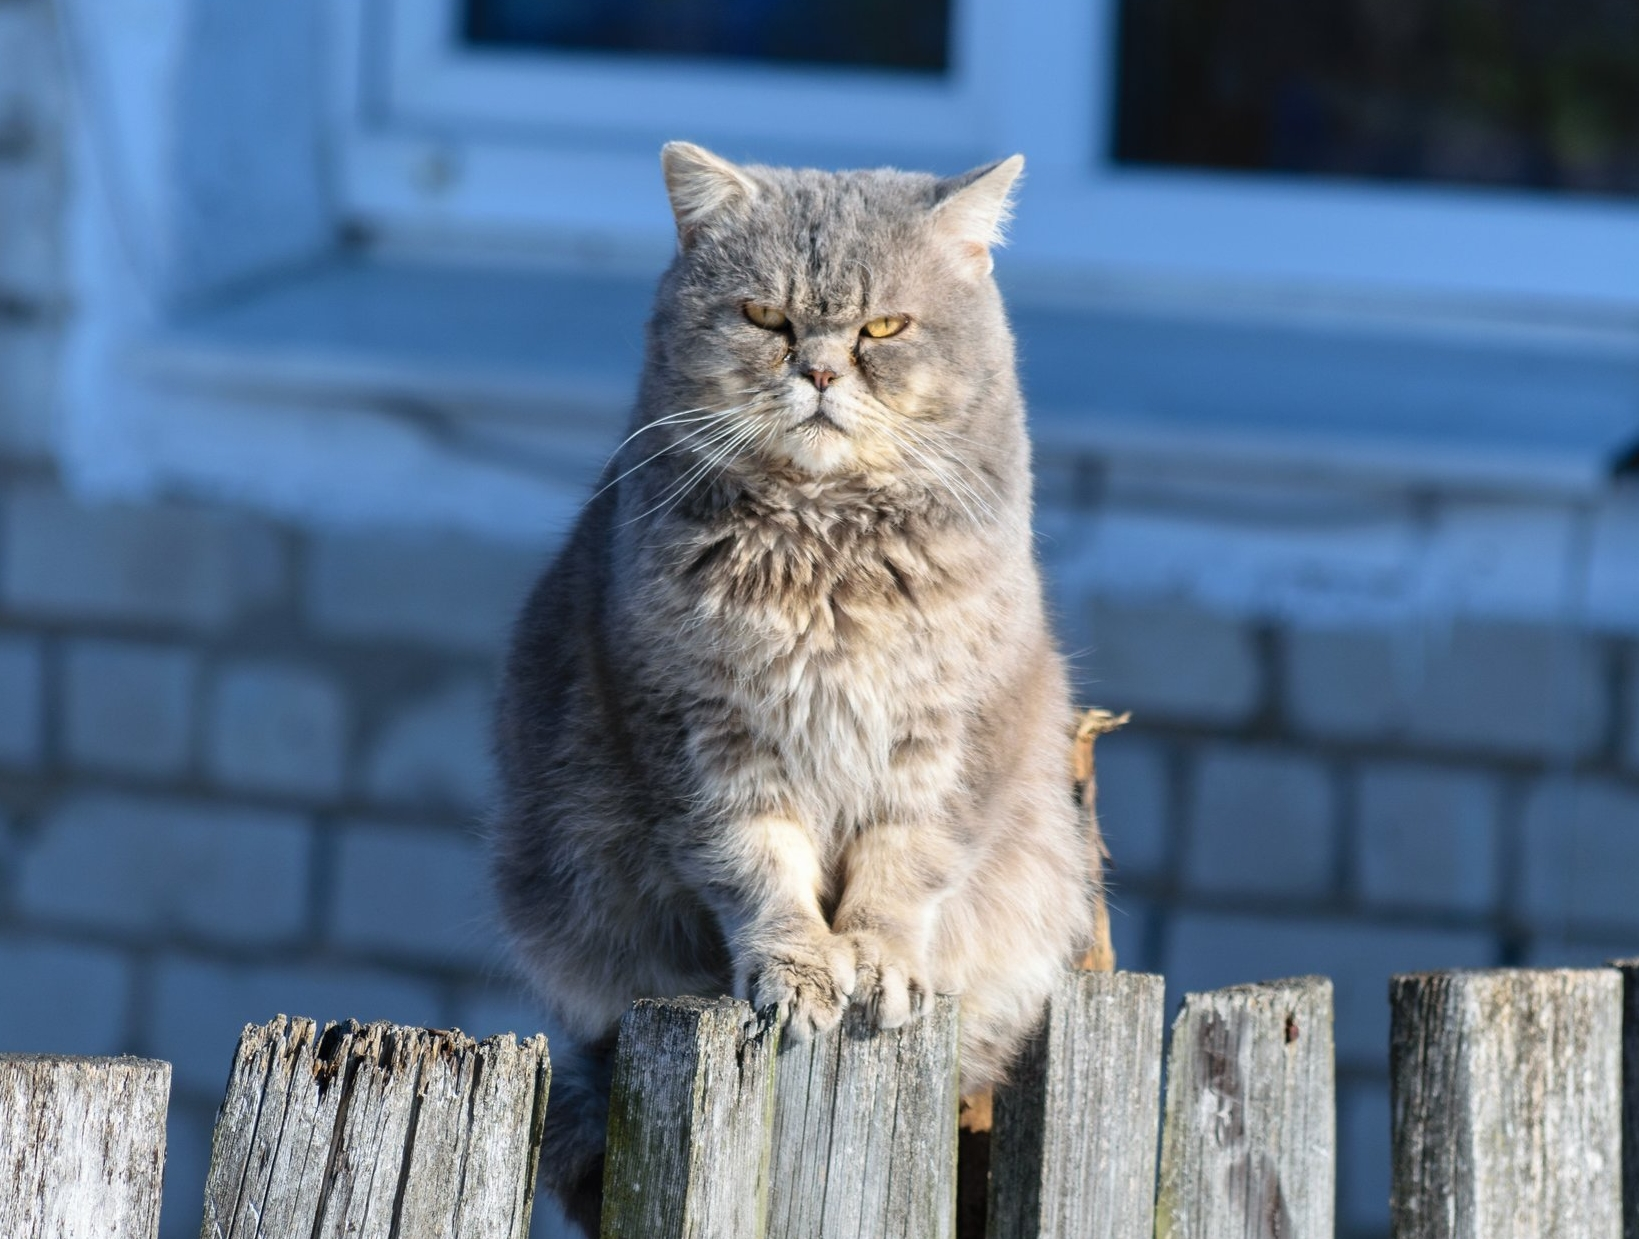 Feeling tense like this grumpy cat? Photo by  Gabriel Matula  on  Unsplash